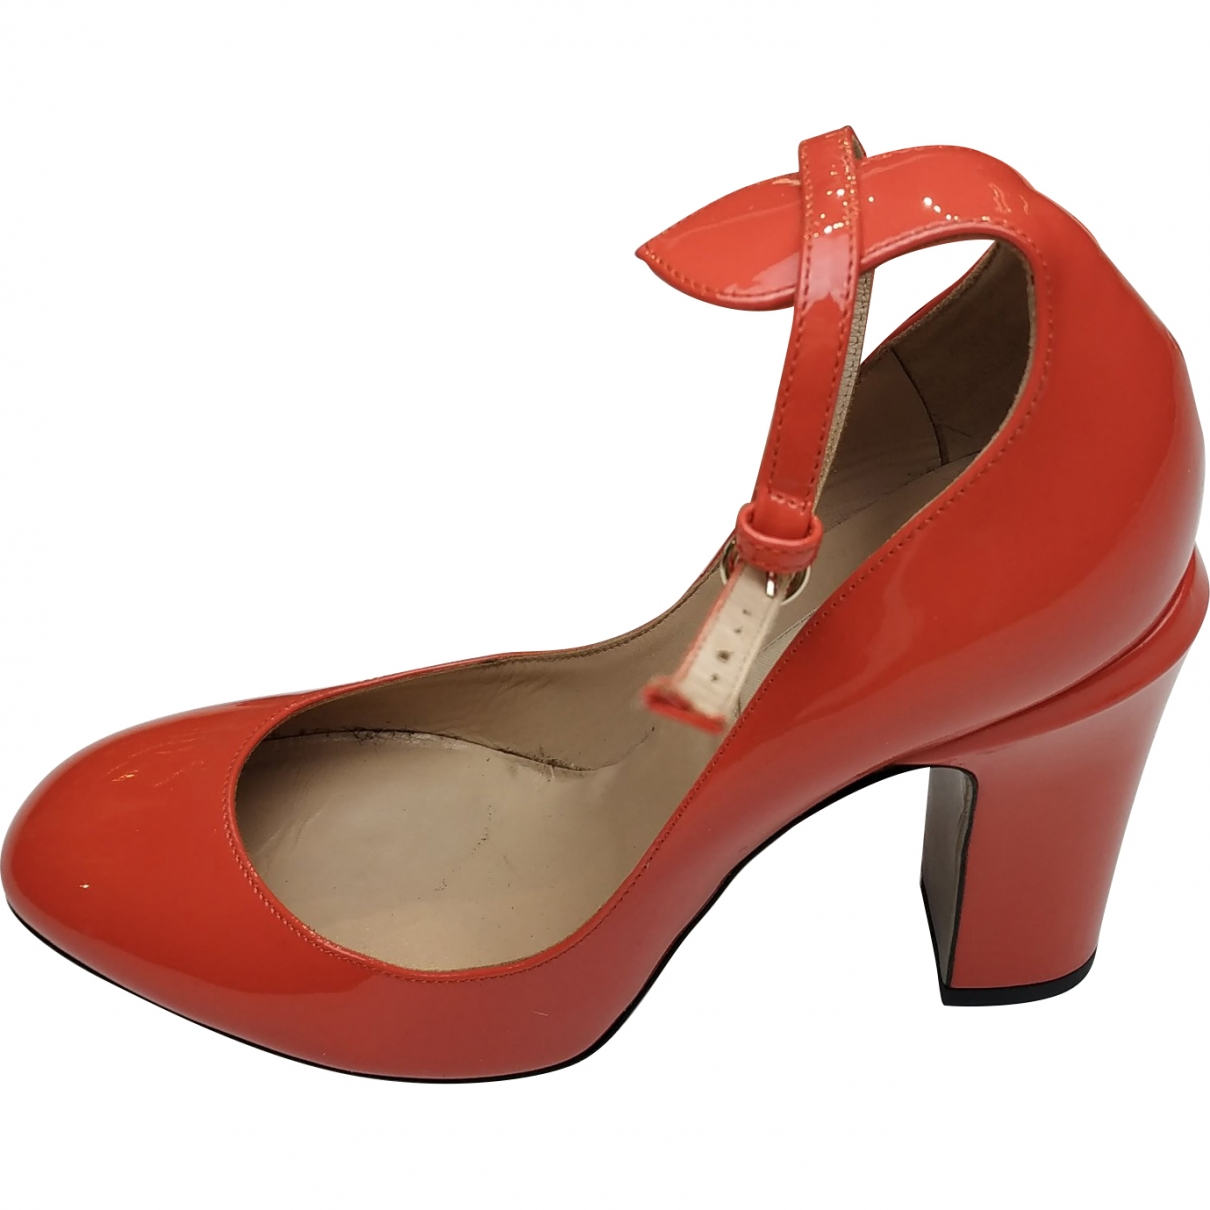 Valentino Garavani Tango Orange Patent leather Heels for Women 37 EU